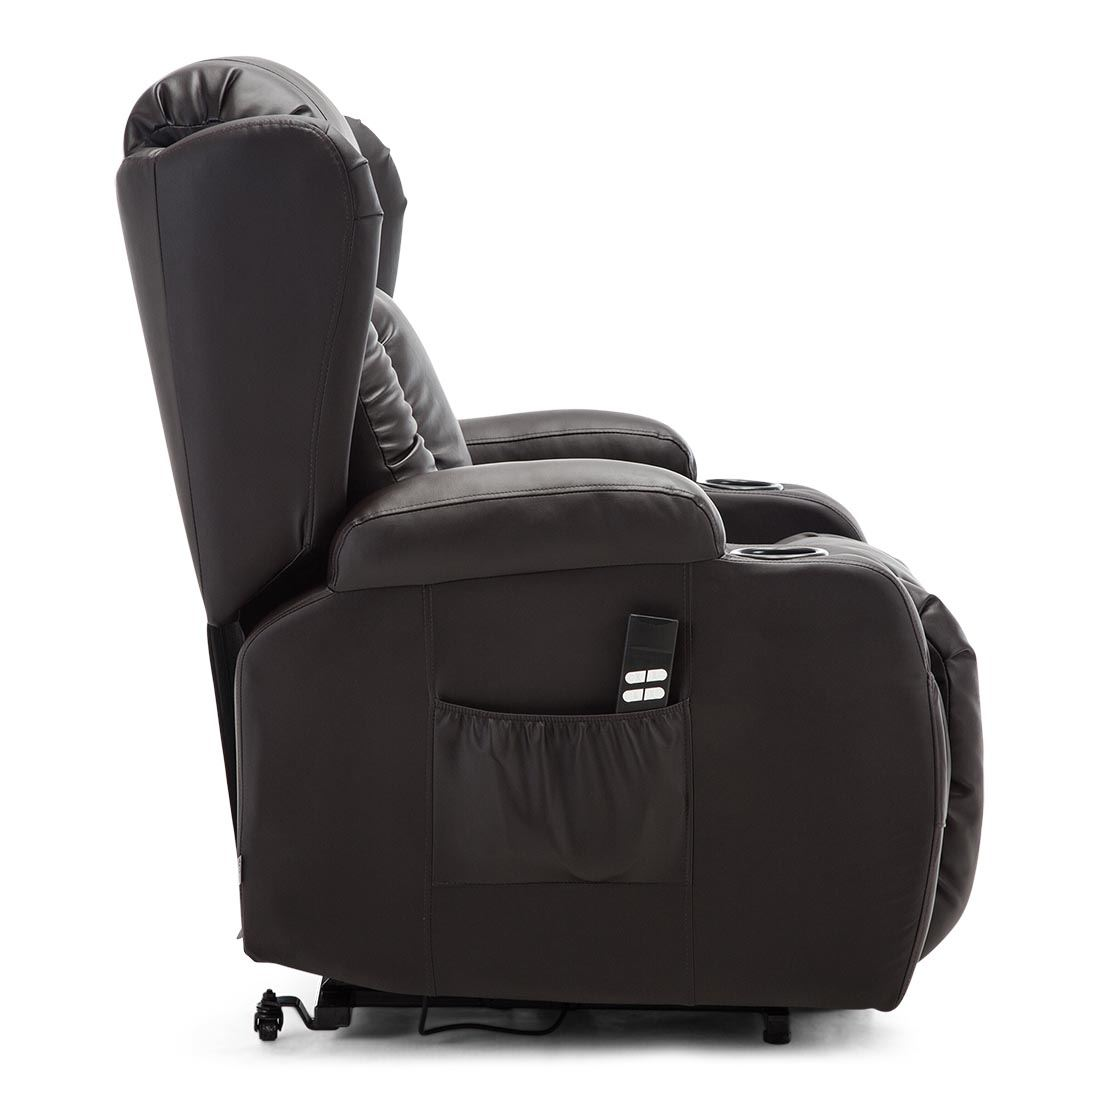 CAESAR-DUAL-MOTOR-RISER-RECLINER-LEATHER-MOBILITY-ARMCHAIR-MASSAGE-HEATED-CHAIR thumbnail 13